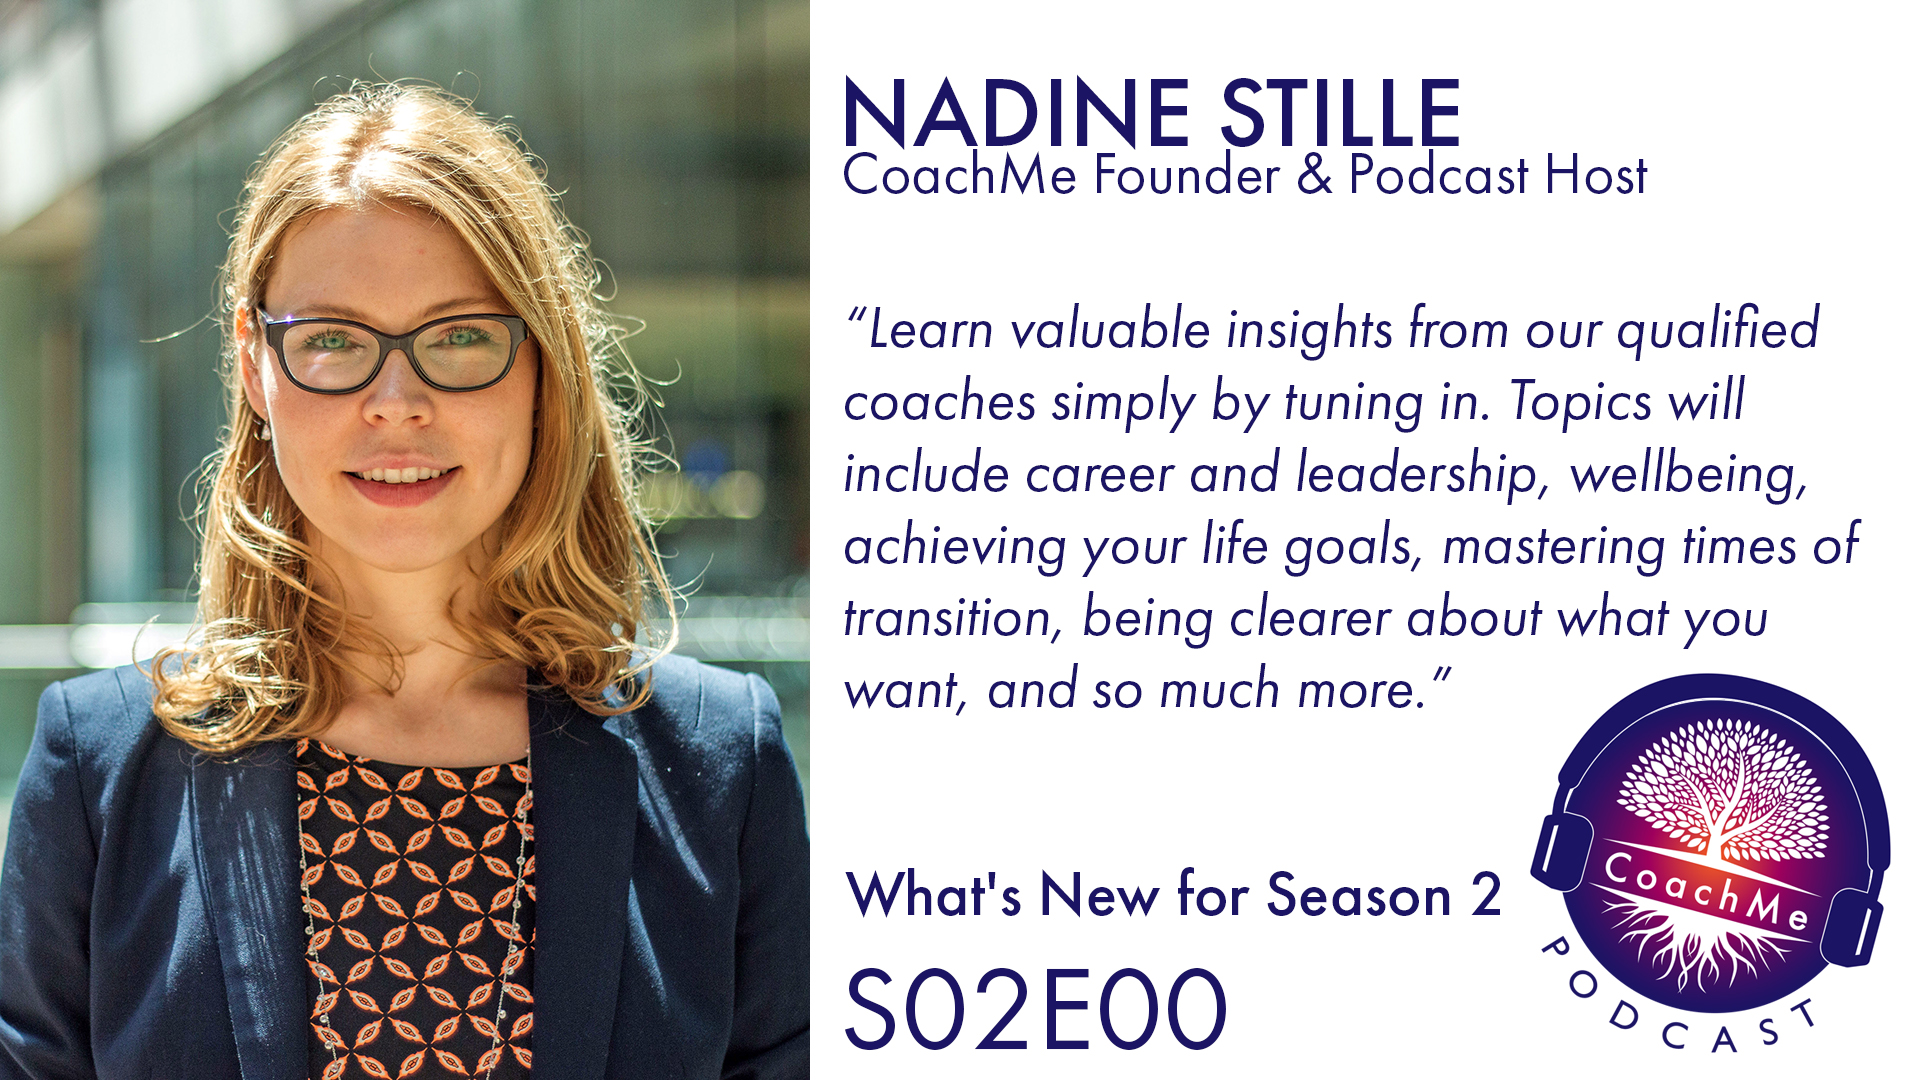 What's New for Season 2 with Nadine Stille - CoachMe Founder - S02 E00 - CoachMe Vancouver Podcast